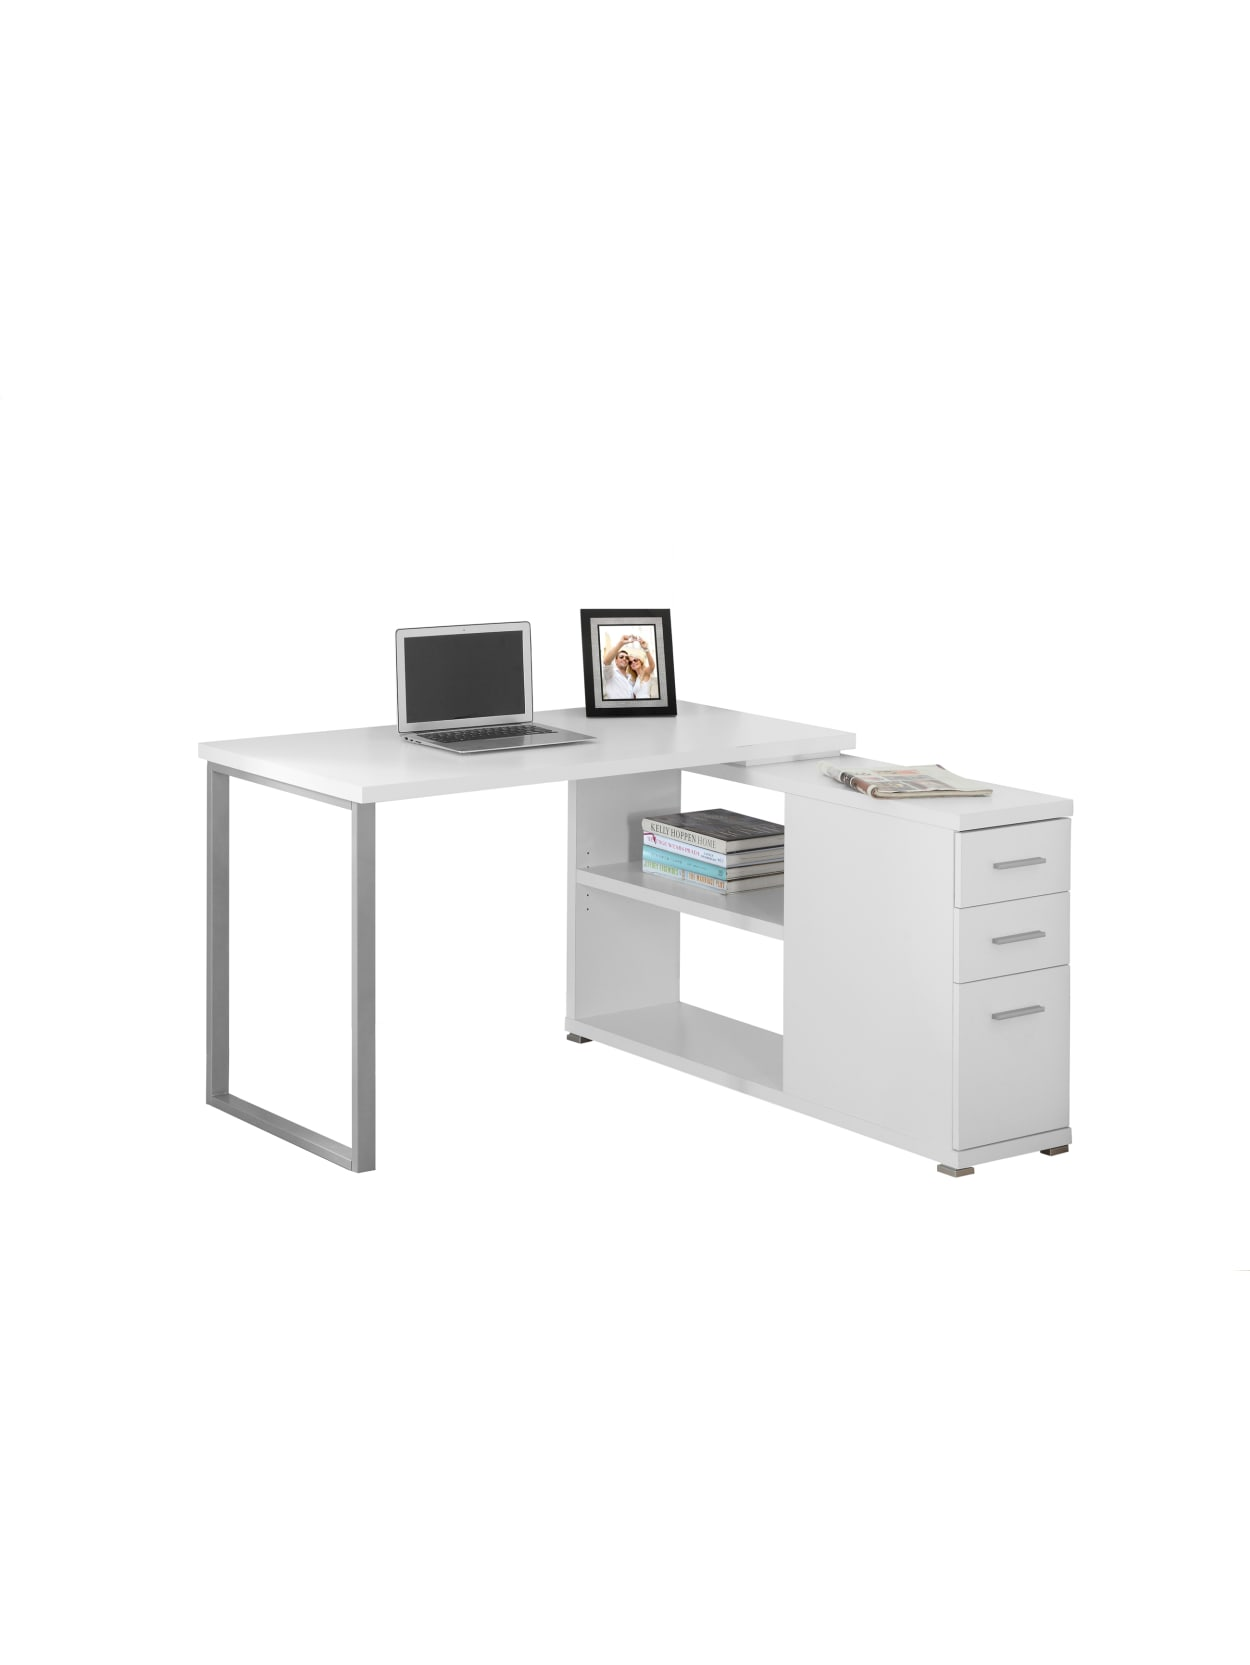 Furniture Details About L Shaped Desk, L Shaped Desk Office Computer Glass Corner With Keyboard Tray Instructions